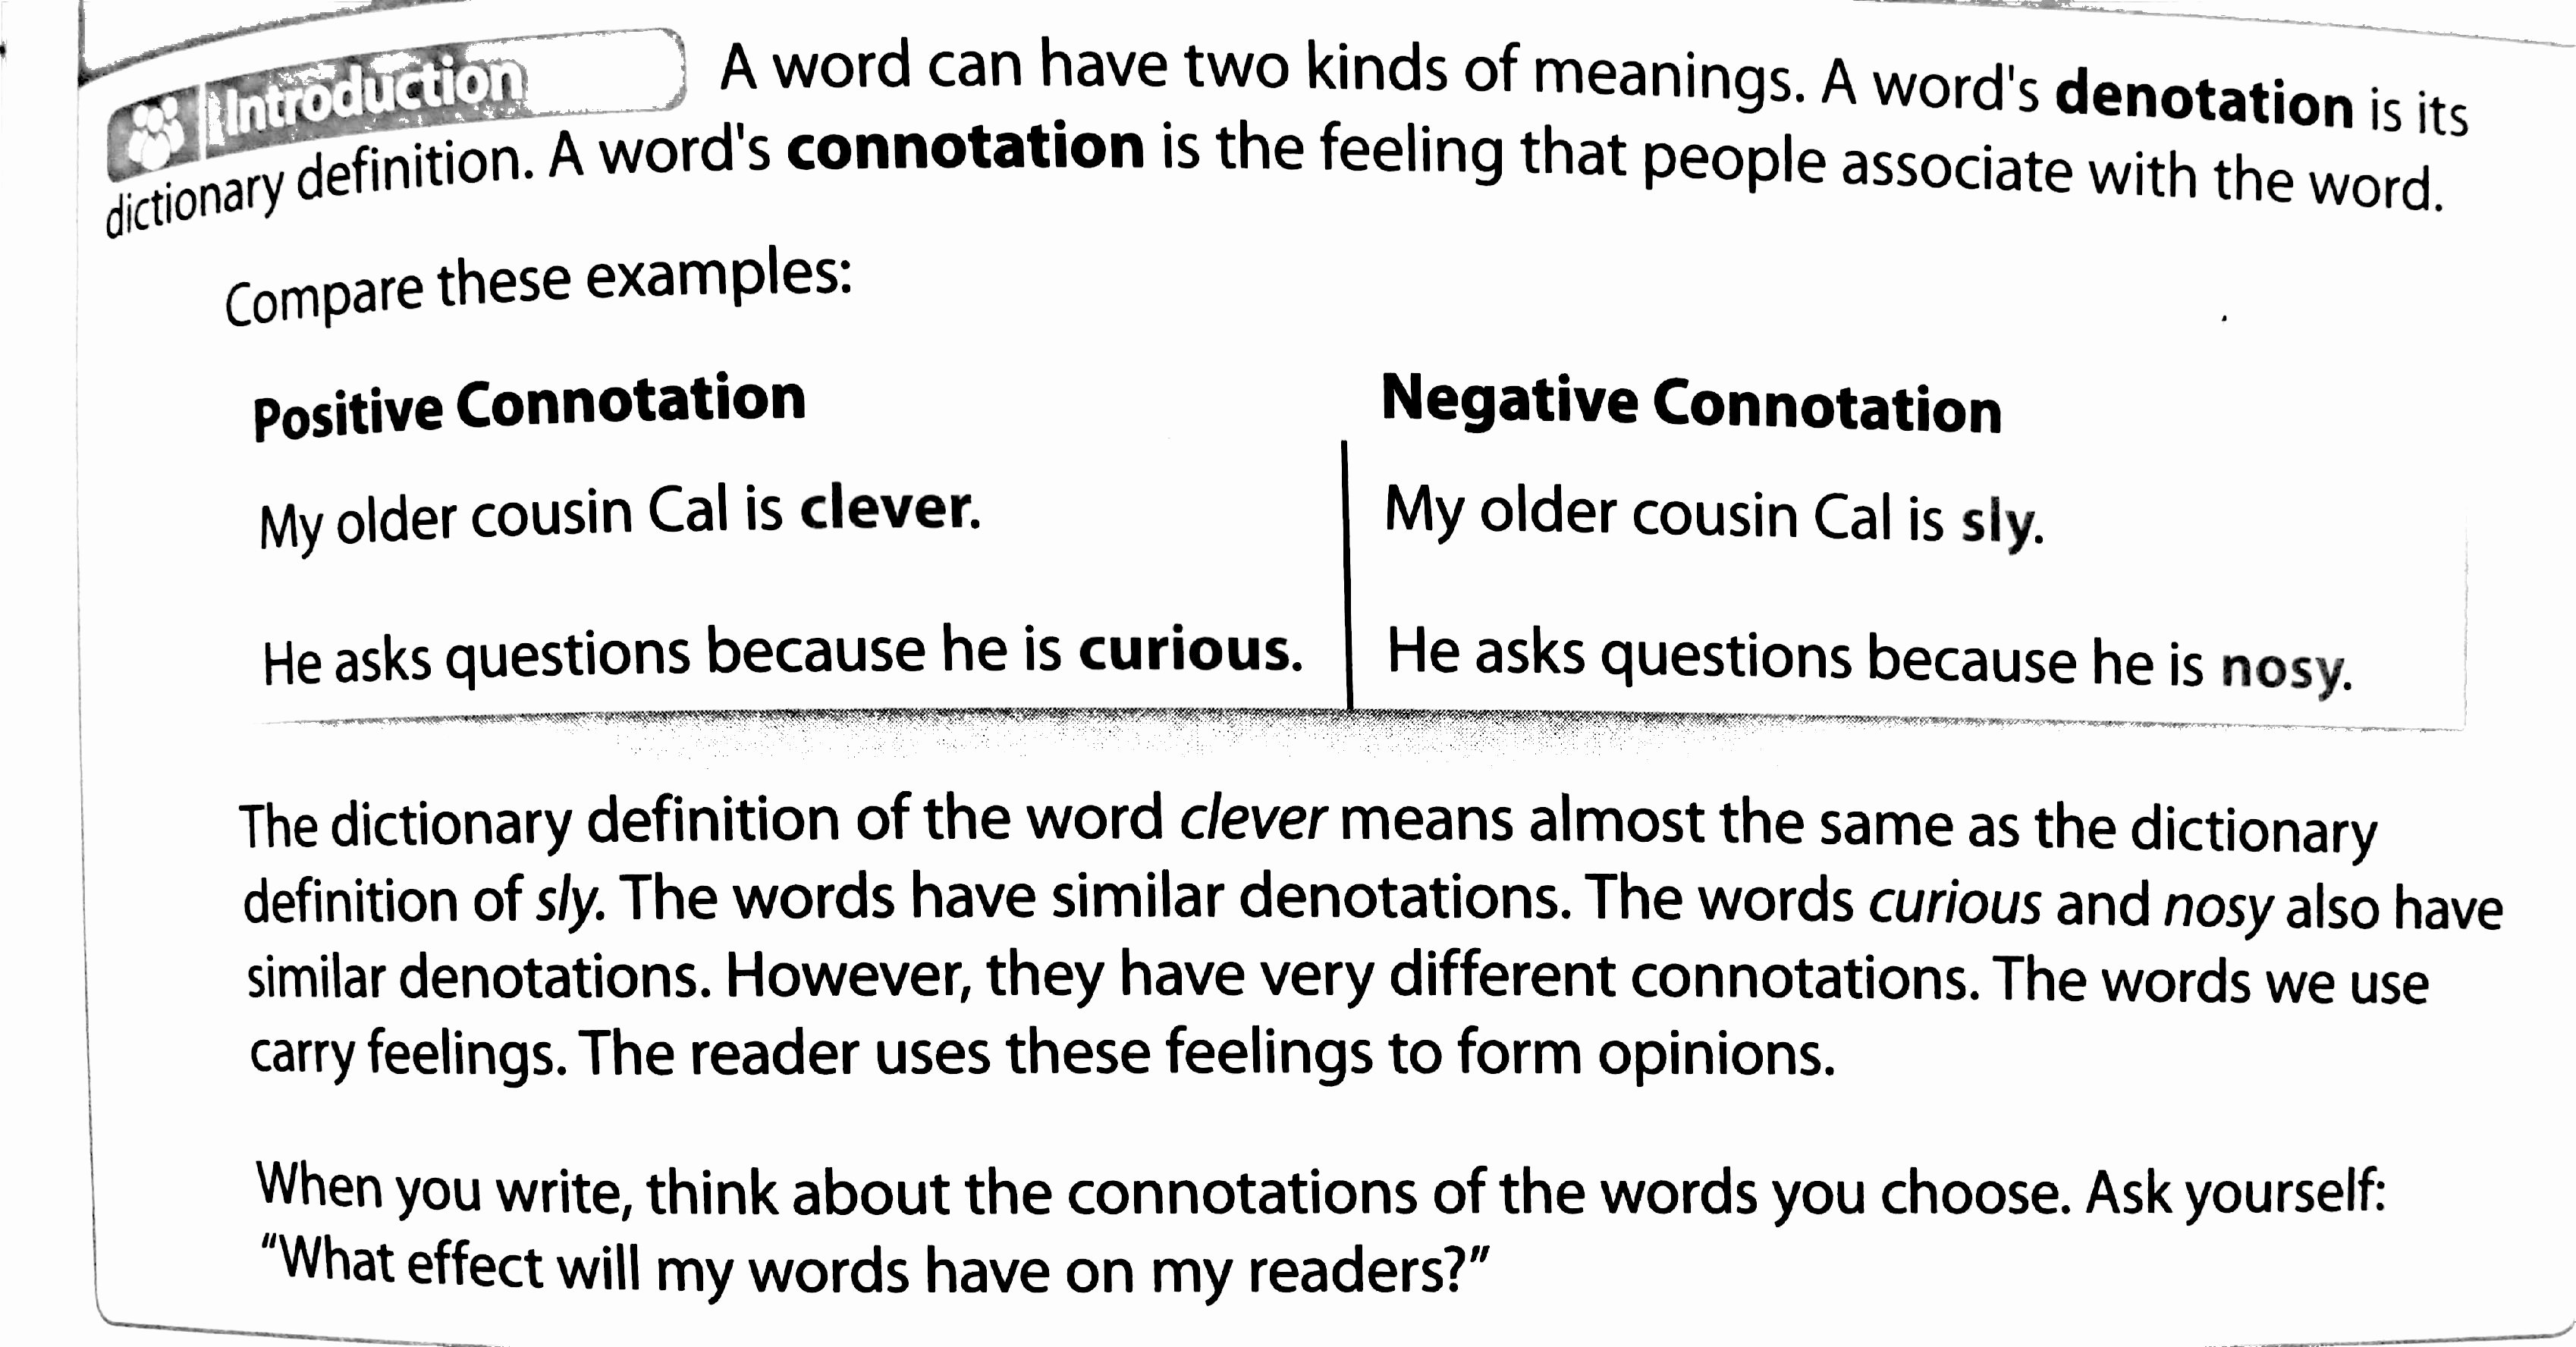 Denotation and Connotation Worksheet Best Of Denotation and Connotation Worksheet